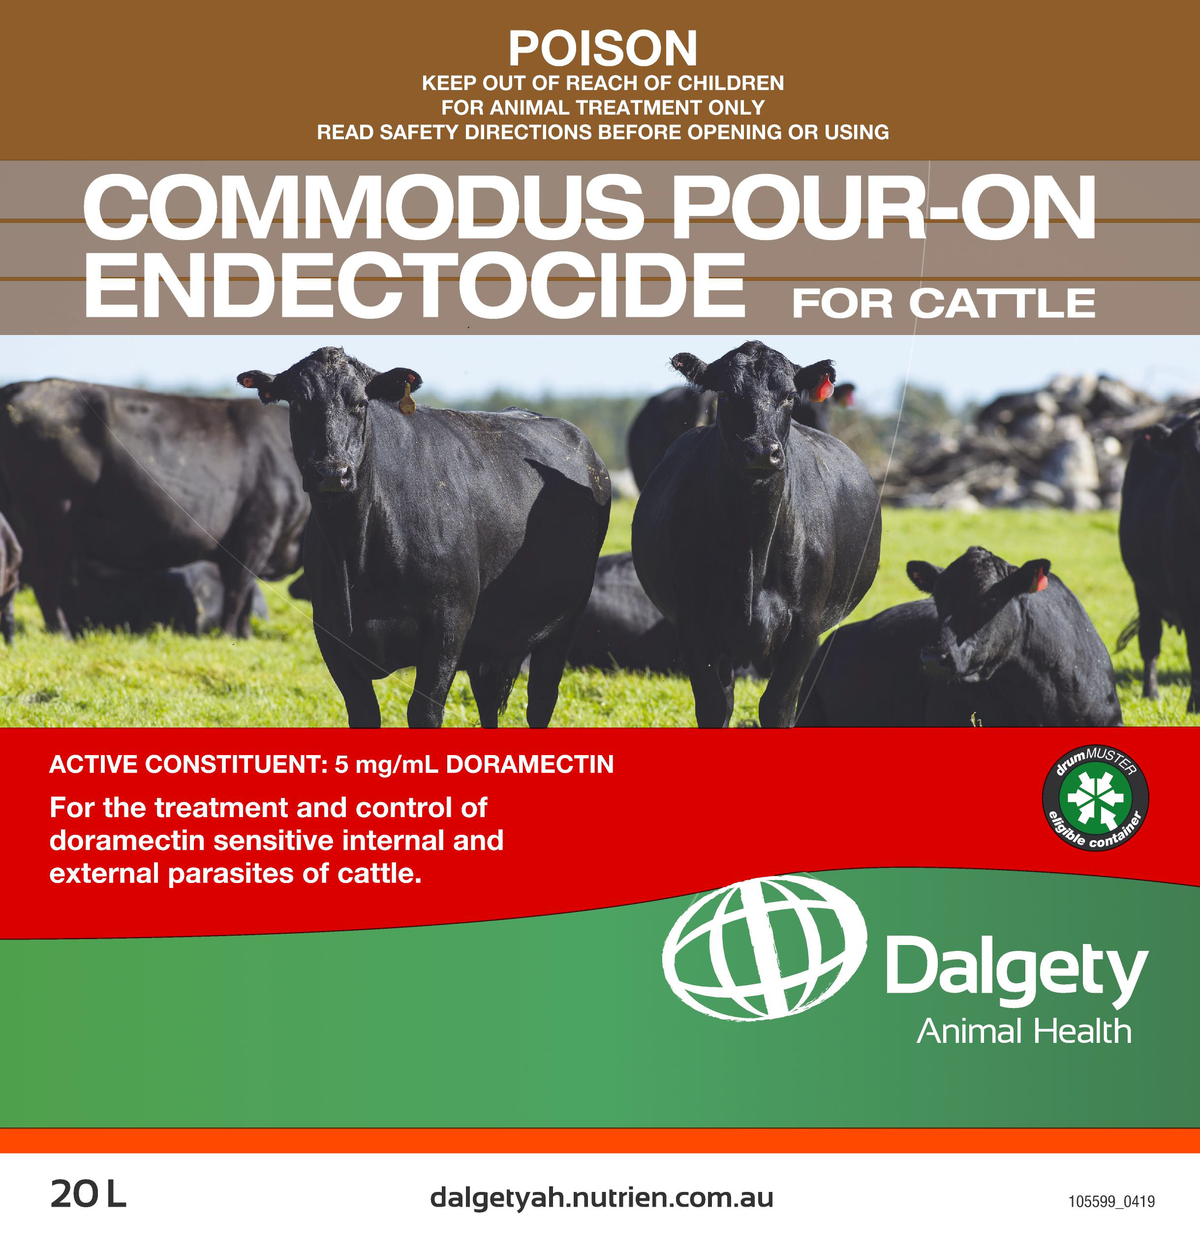 Commodus Pour-On Endectocide For Cattle Dalgety Animal Health